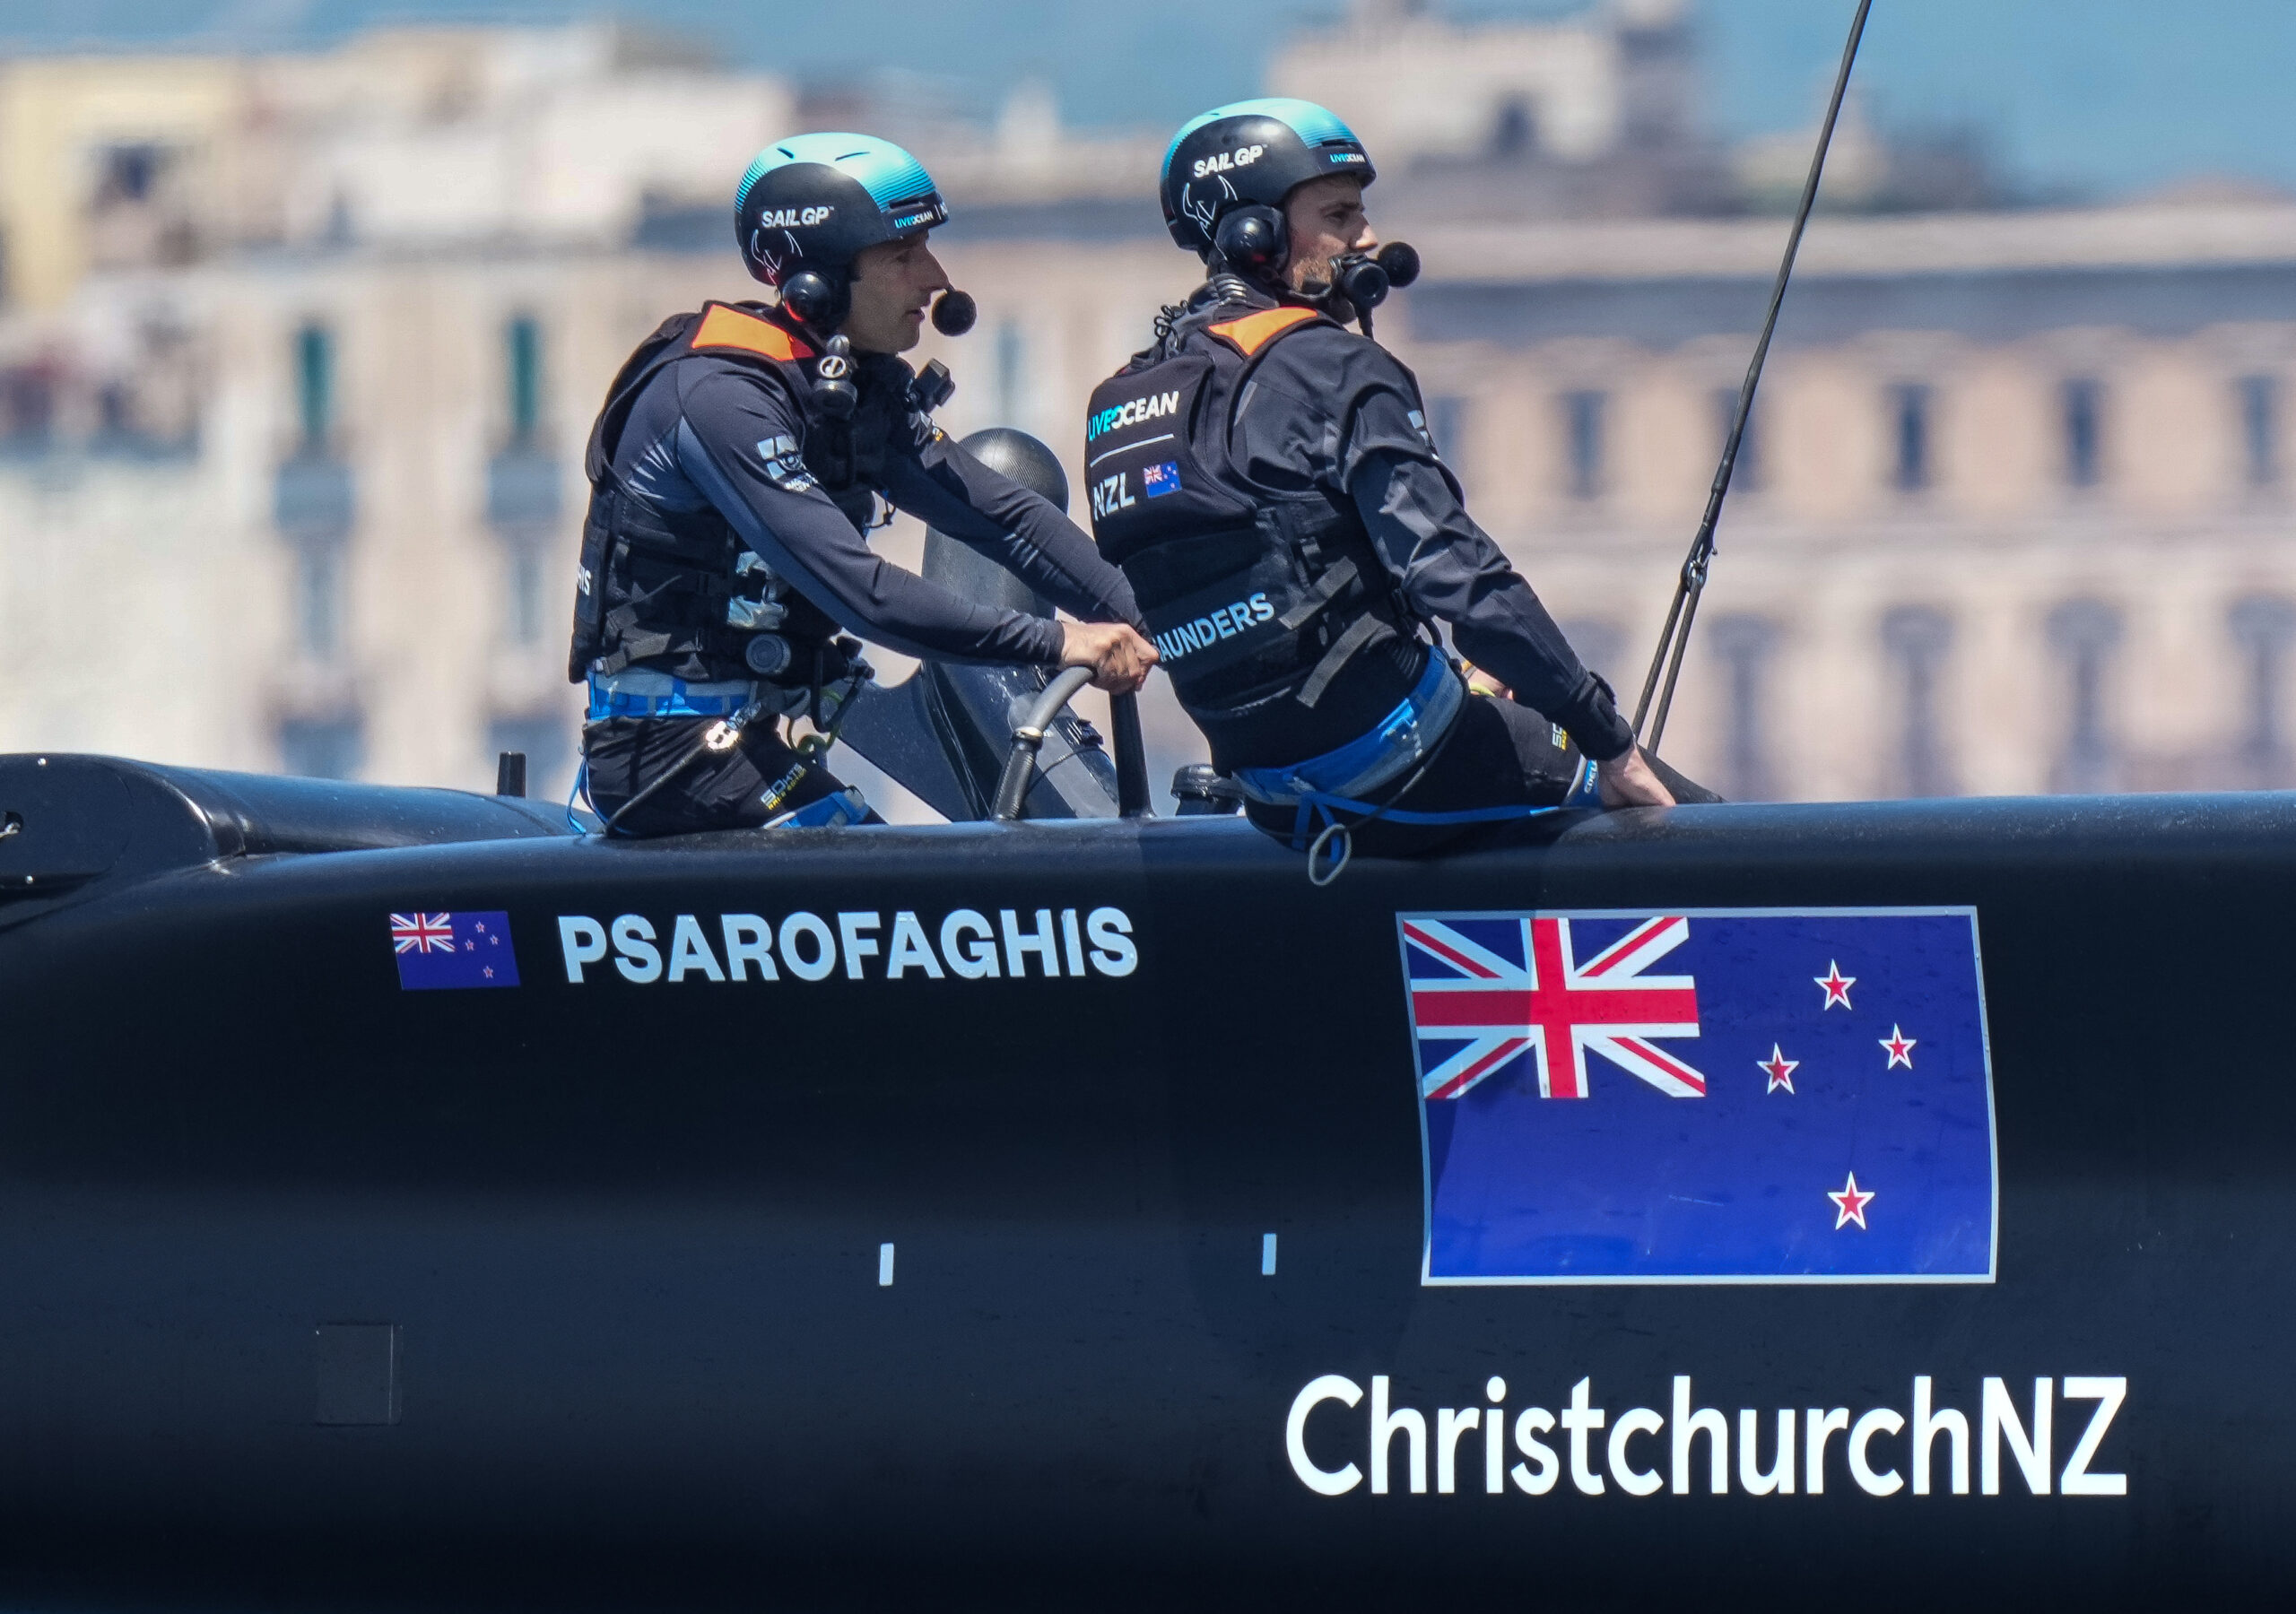 New Zealand SailGP Team helmed by Arnaud Psarofaghis in action during practice session ahead of Italy SailGP, Event 2, Season 2 in Taranto, Italy. 04 June 2021. Photo: Bob Martin for SailGP. Handout image supplied by SailGP